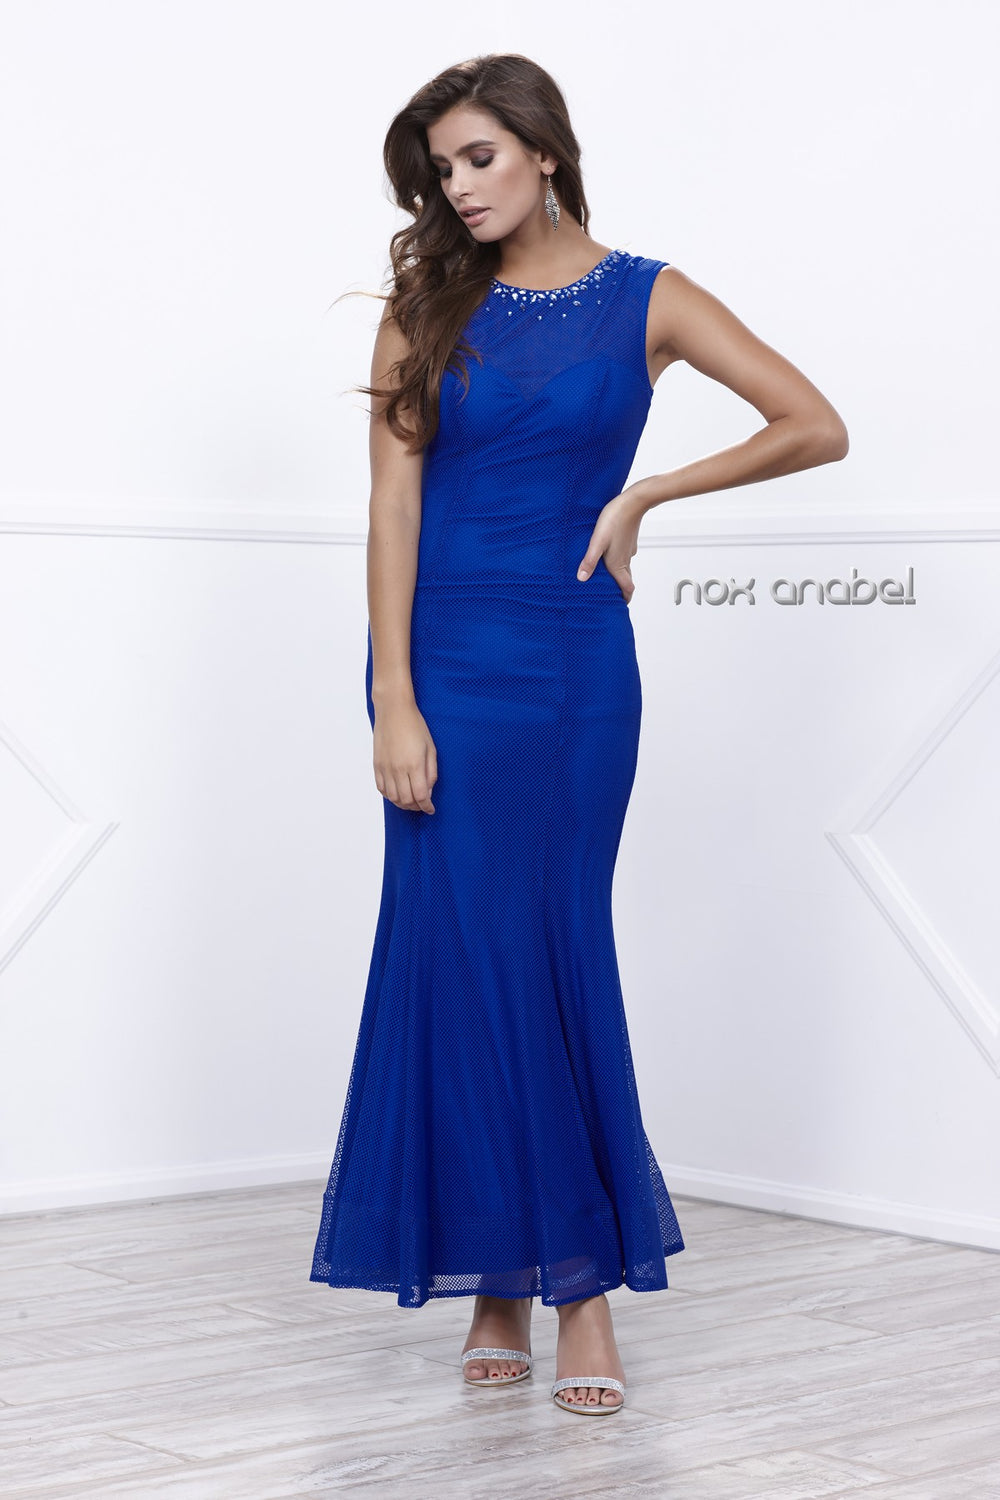 FITTED ILLUSION NECKLINE LONG BEADED MESH LINED DRESS 8259 BY NARIANNA